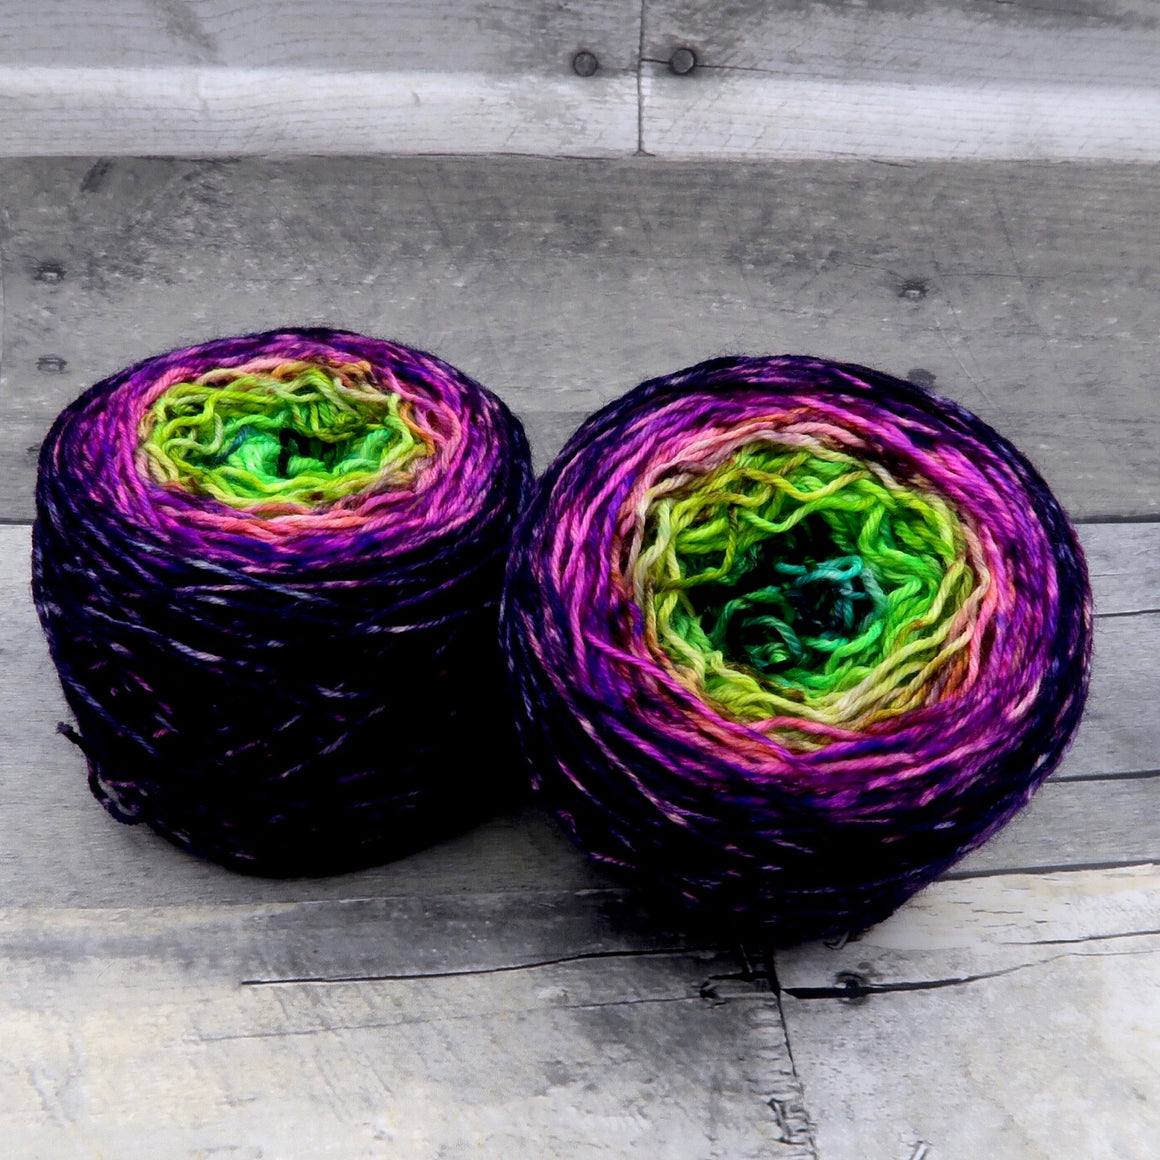 Funky Fresh - (speckle gradient pair) - Fluorescent green, yellow, orange, pink speckled with black